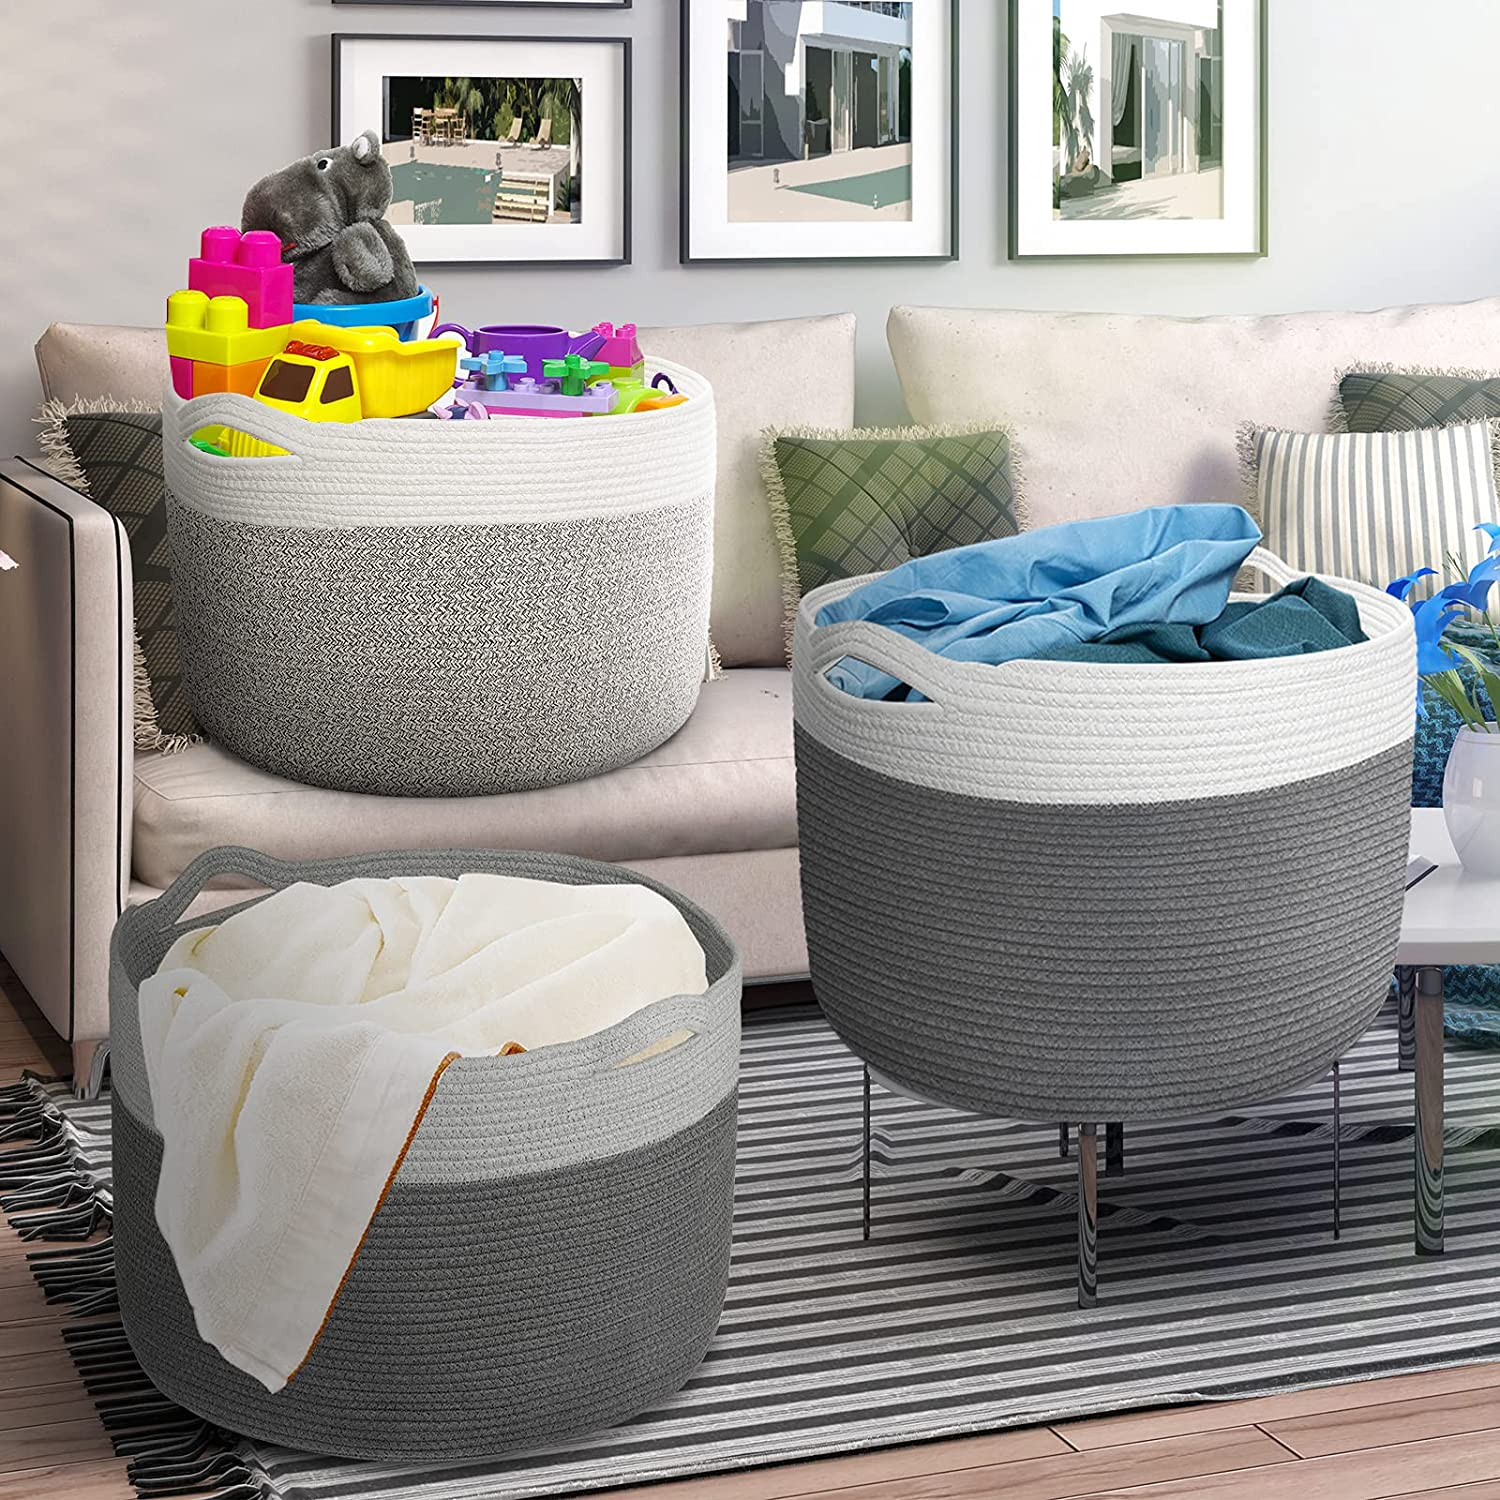 Spring new work one after another XXXL Large Woven Laundry Basket for New arrival Bl Cotton Rope